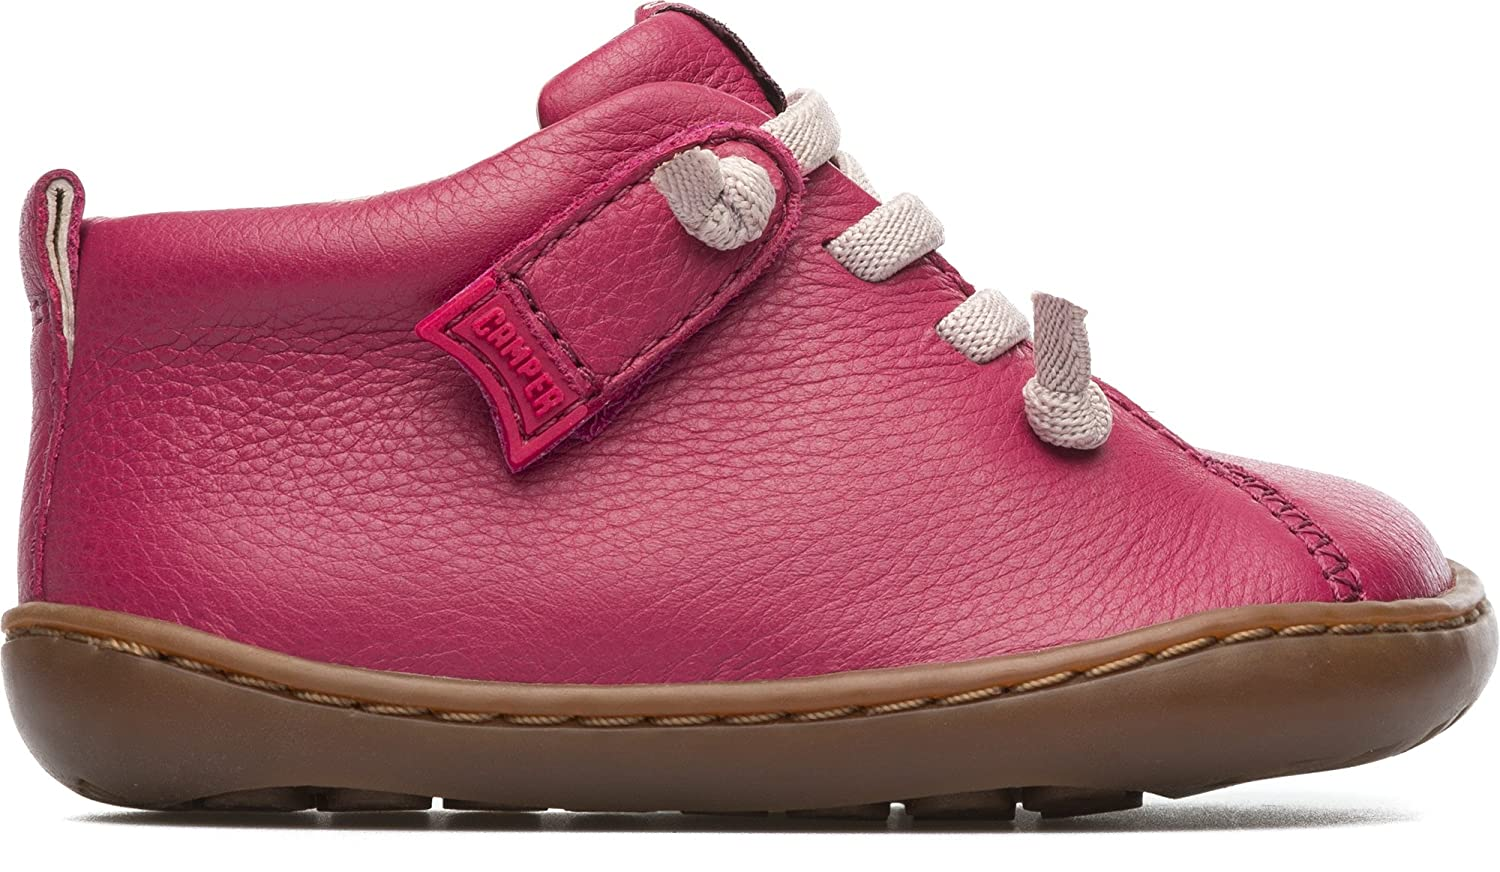 Camper Peu 80153-057 Chaussures casual chic Enfant 8431319050035